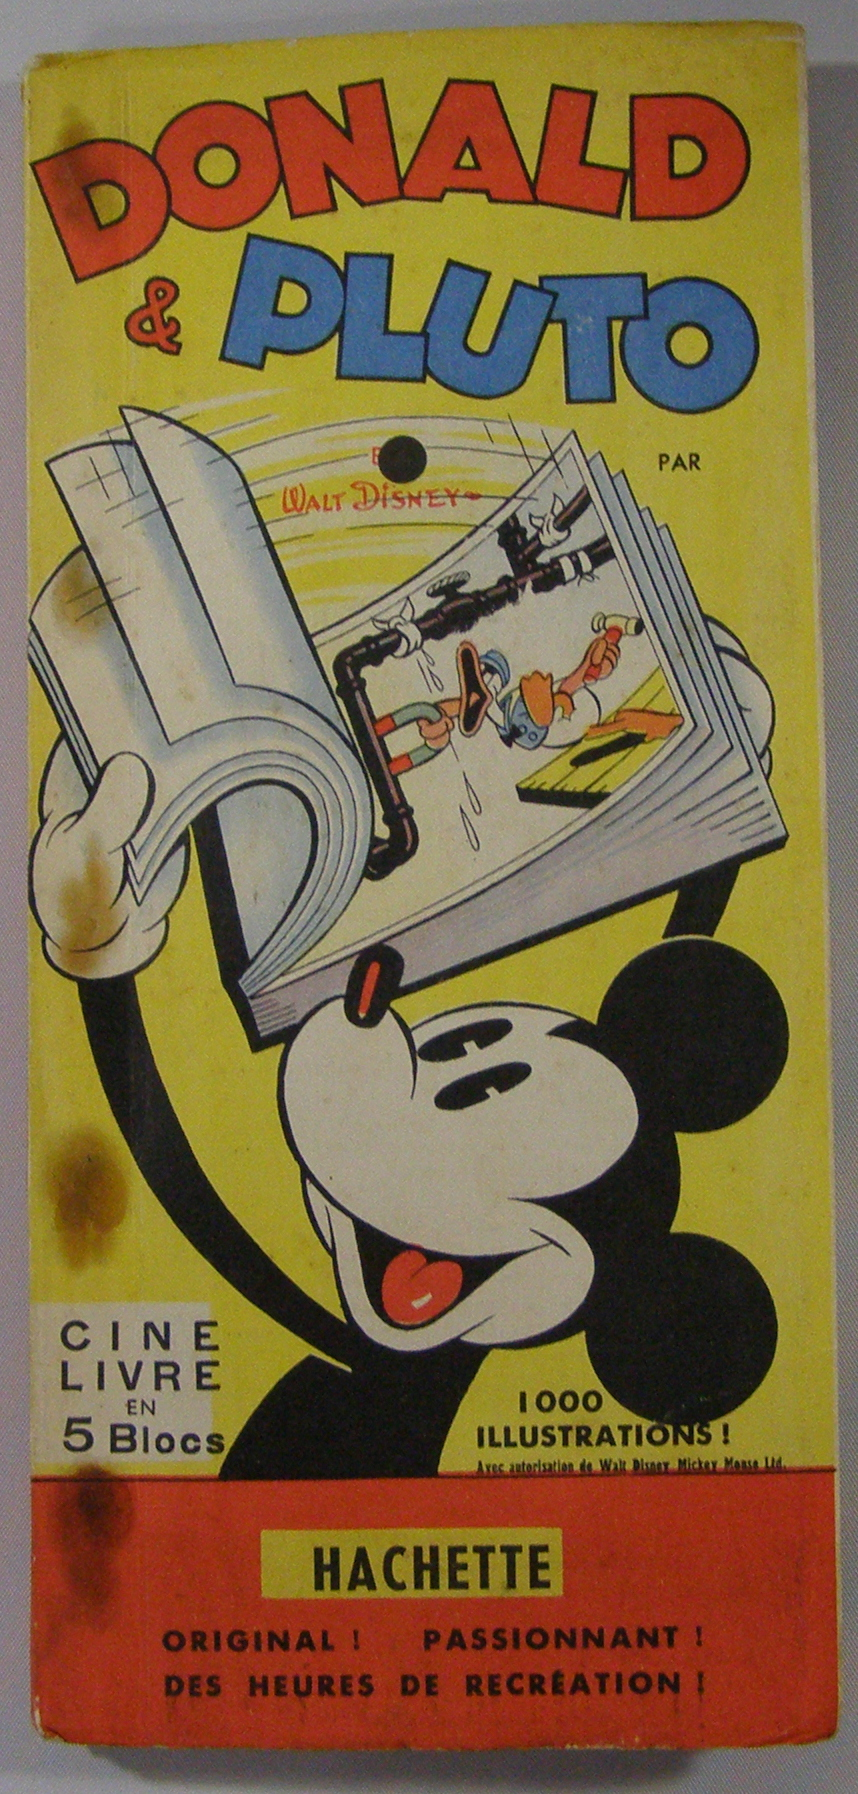 Donald Pluto Flip Book Cine Livre En 5 Blocs By Walt Disney On Thorn Books